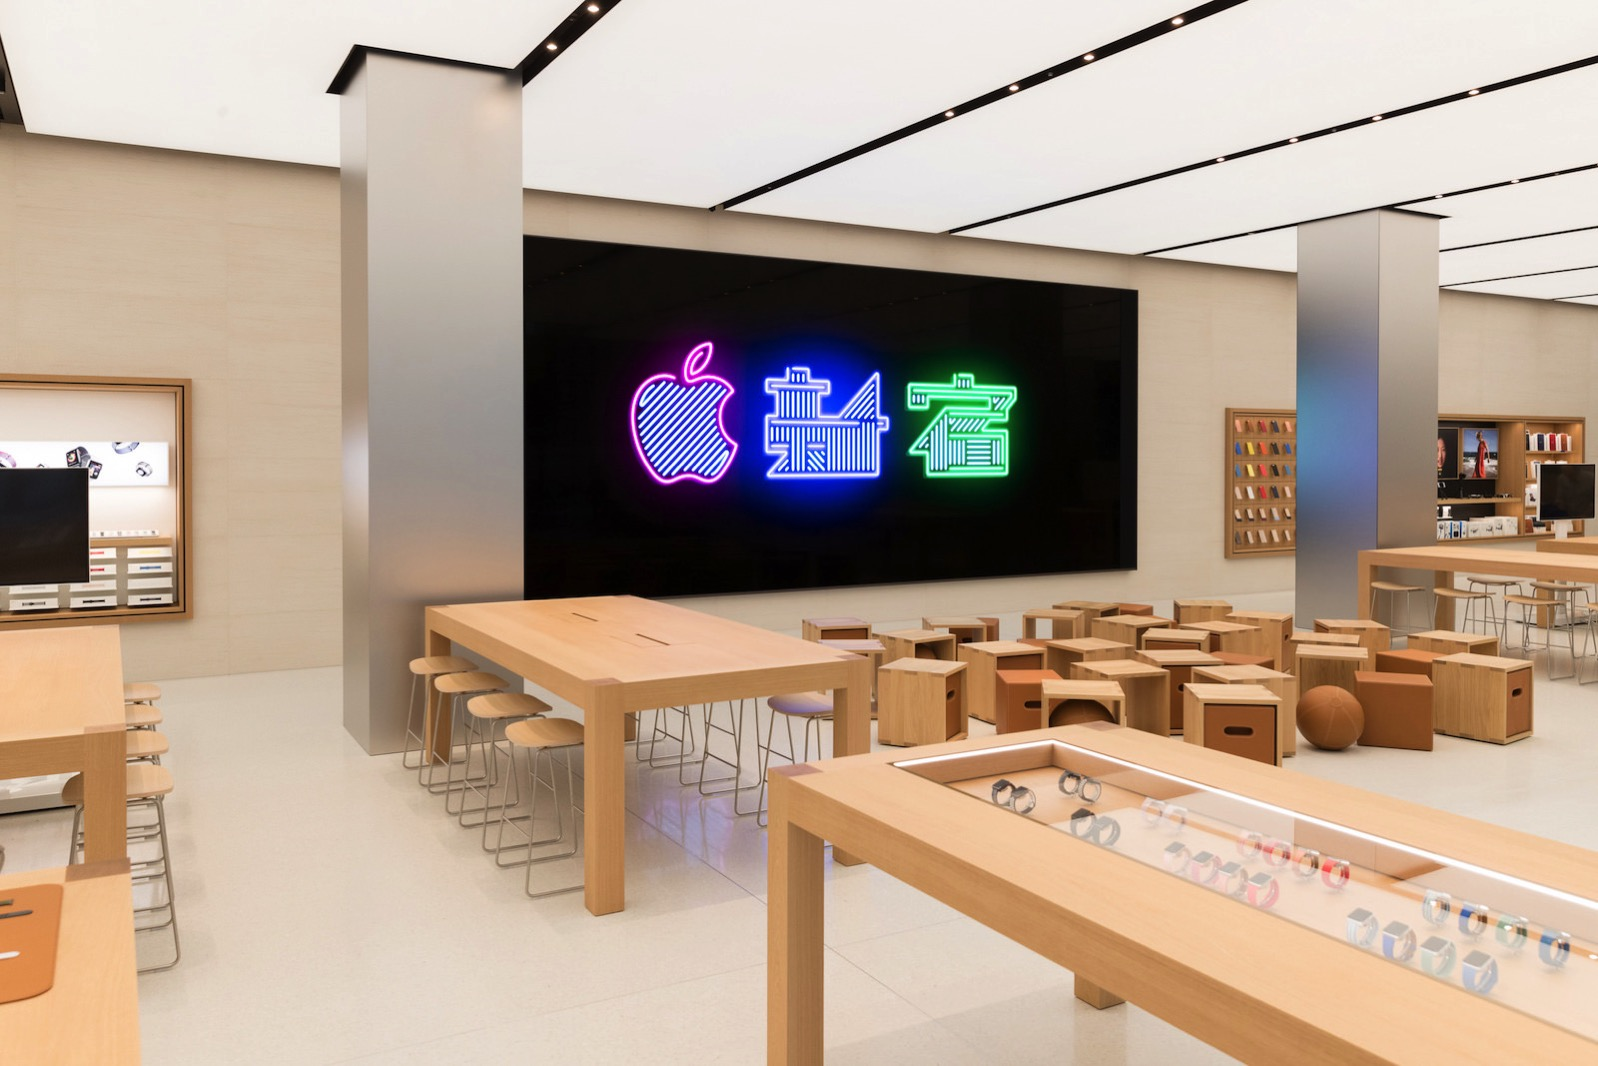 Apple_Store_Interior_Toyko_Shinjuku_04042018.jpg